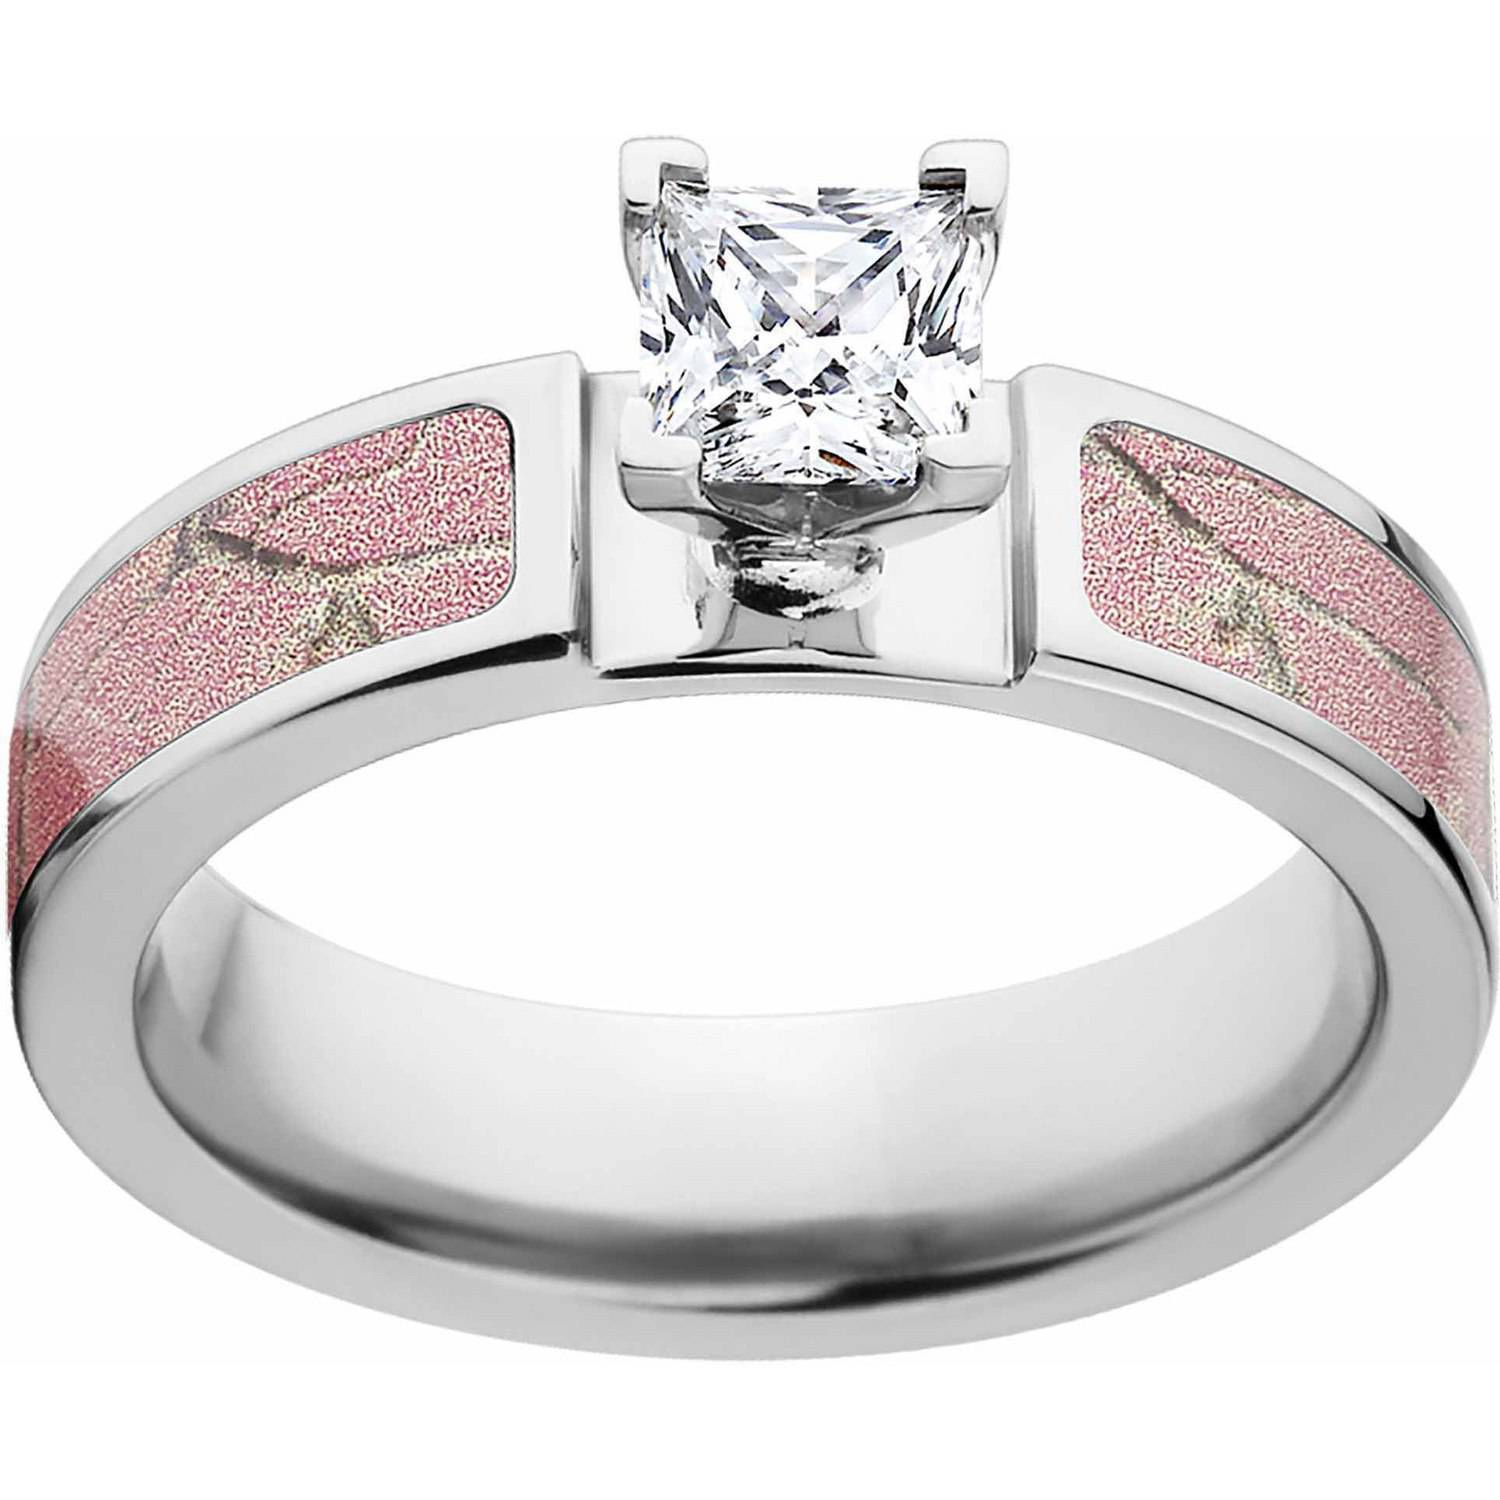 Realtree AP Pink Women's Camo 1 Carat T.G.W. Princess CZ in 14kt Whit Gold Prong Setting Cobalt Engagement Ring with Polished Edges and Deluxe Comfort Fit